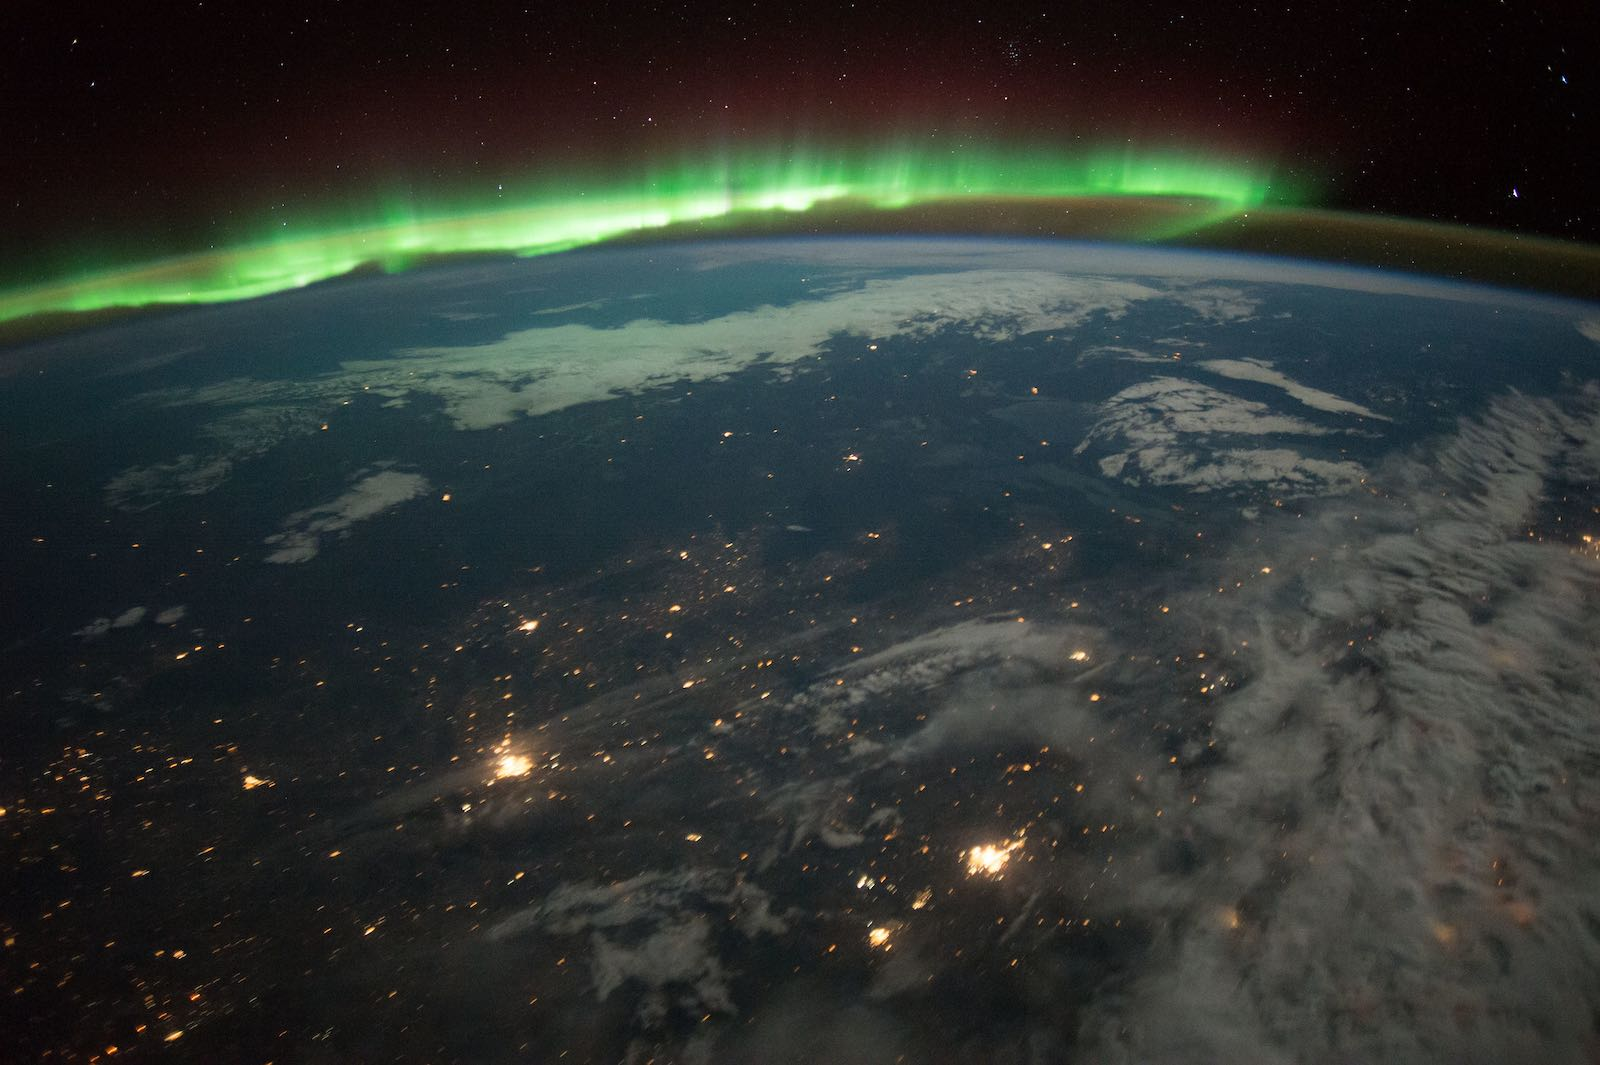 The Aurora Borealis seen from the International Space Center in 2016 (NASA/Flickr)